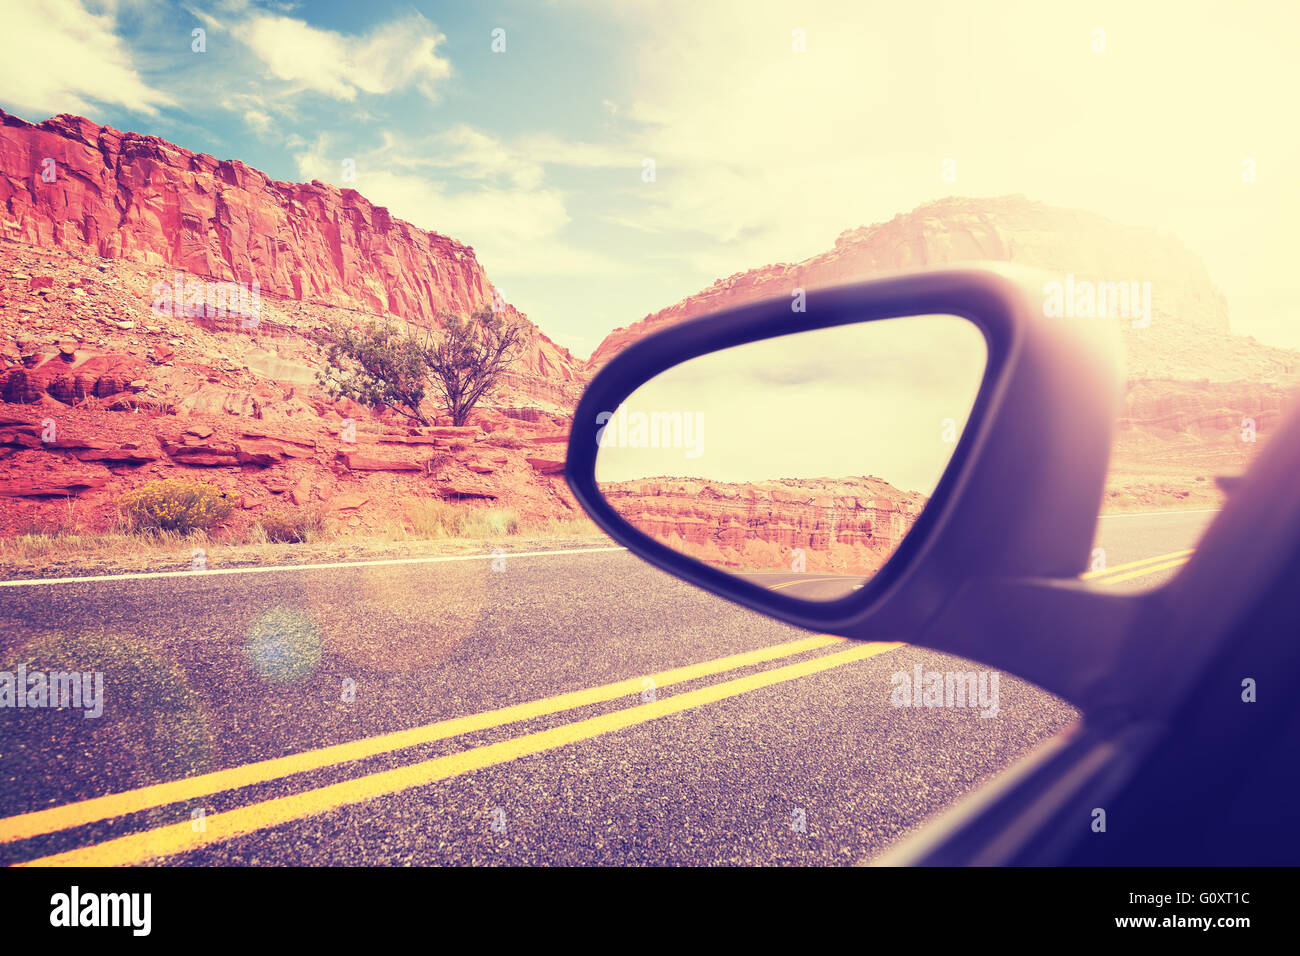 Stock Photo - Vintage stylized car wing mirror with lens flare effect ...